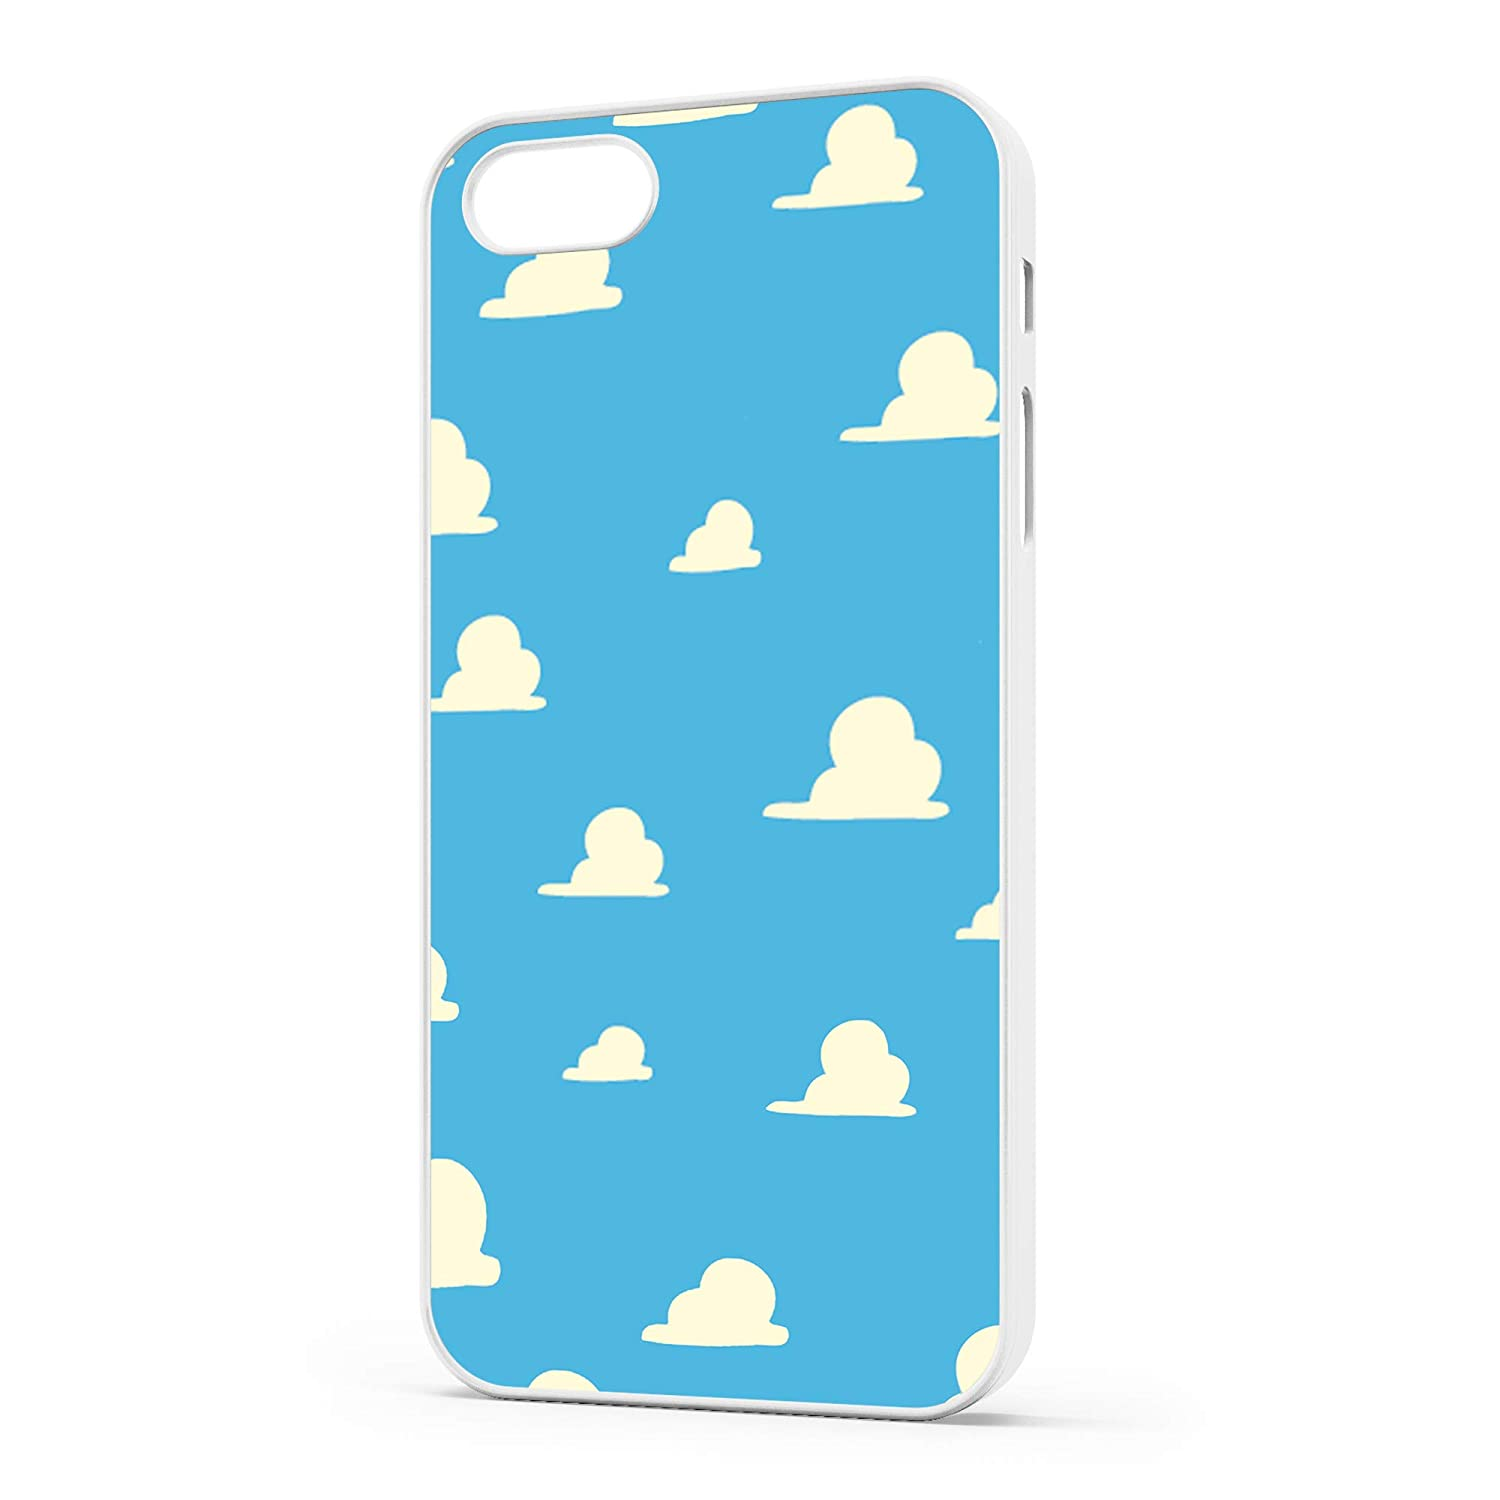 103 Designs Toy Story Iphone Case Andy S Bedroom Wallpaper